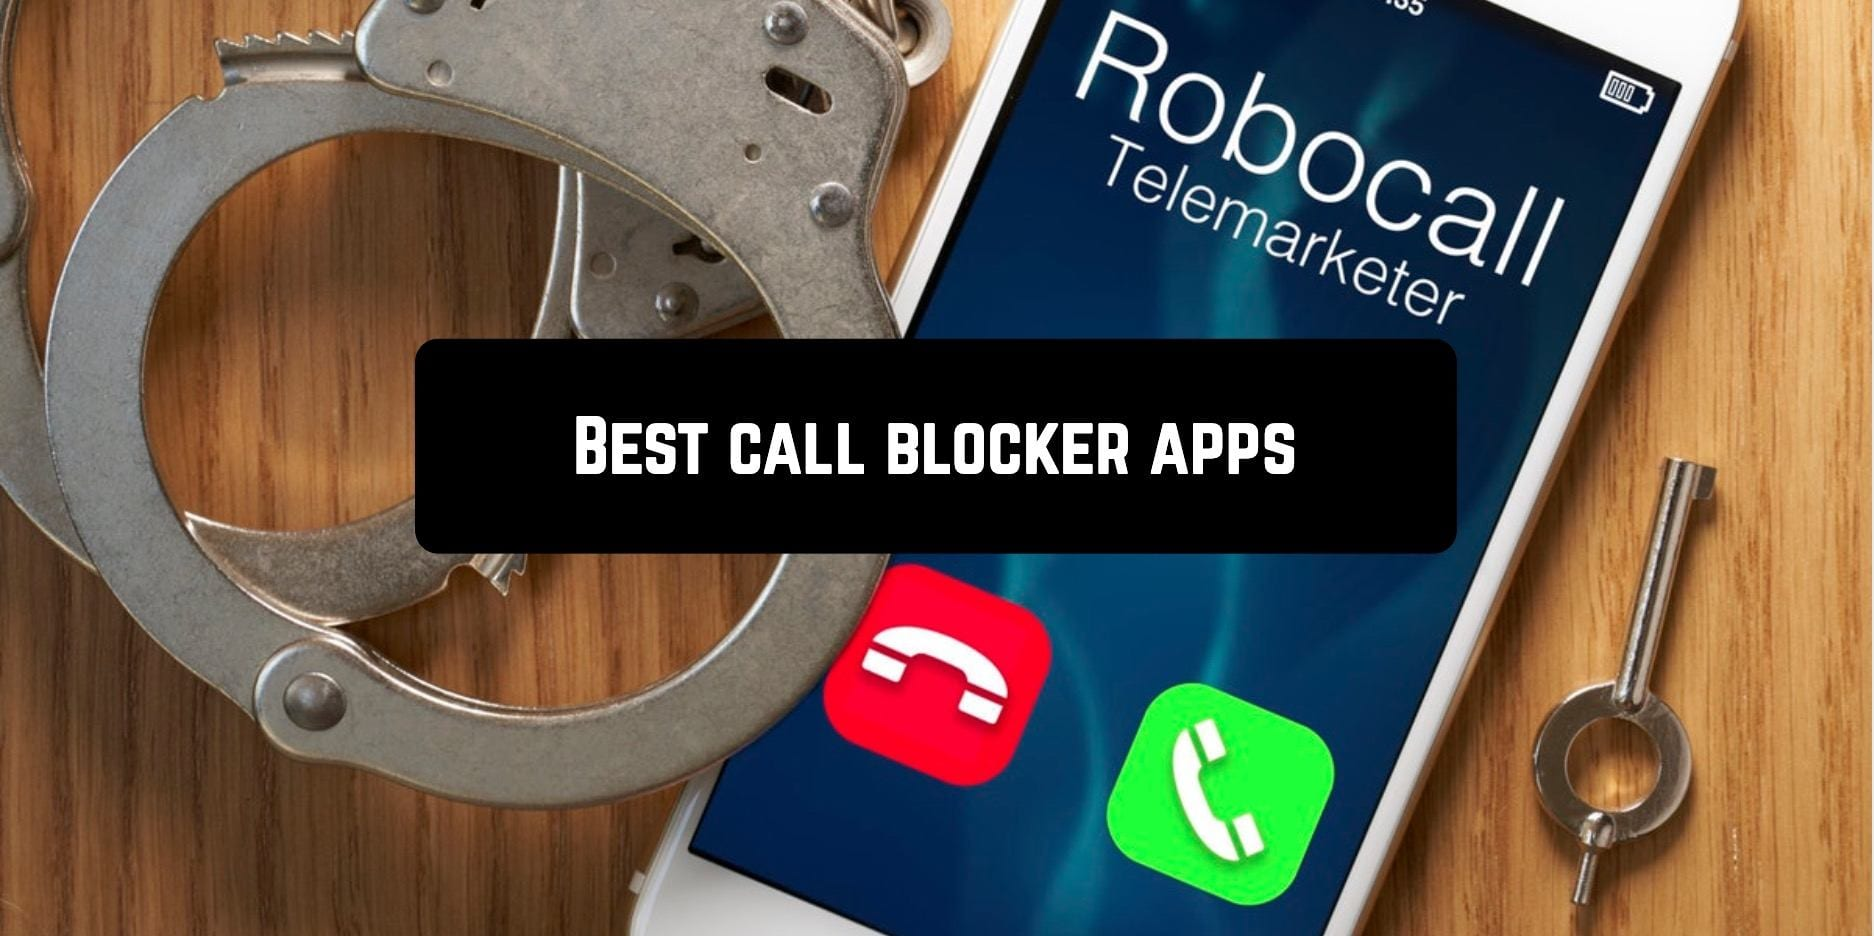 Best call blocker apps